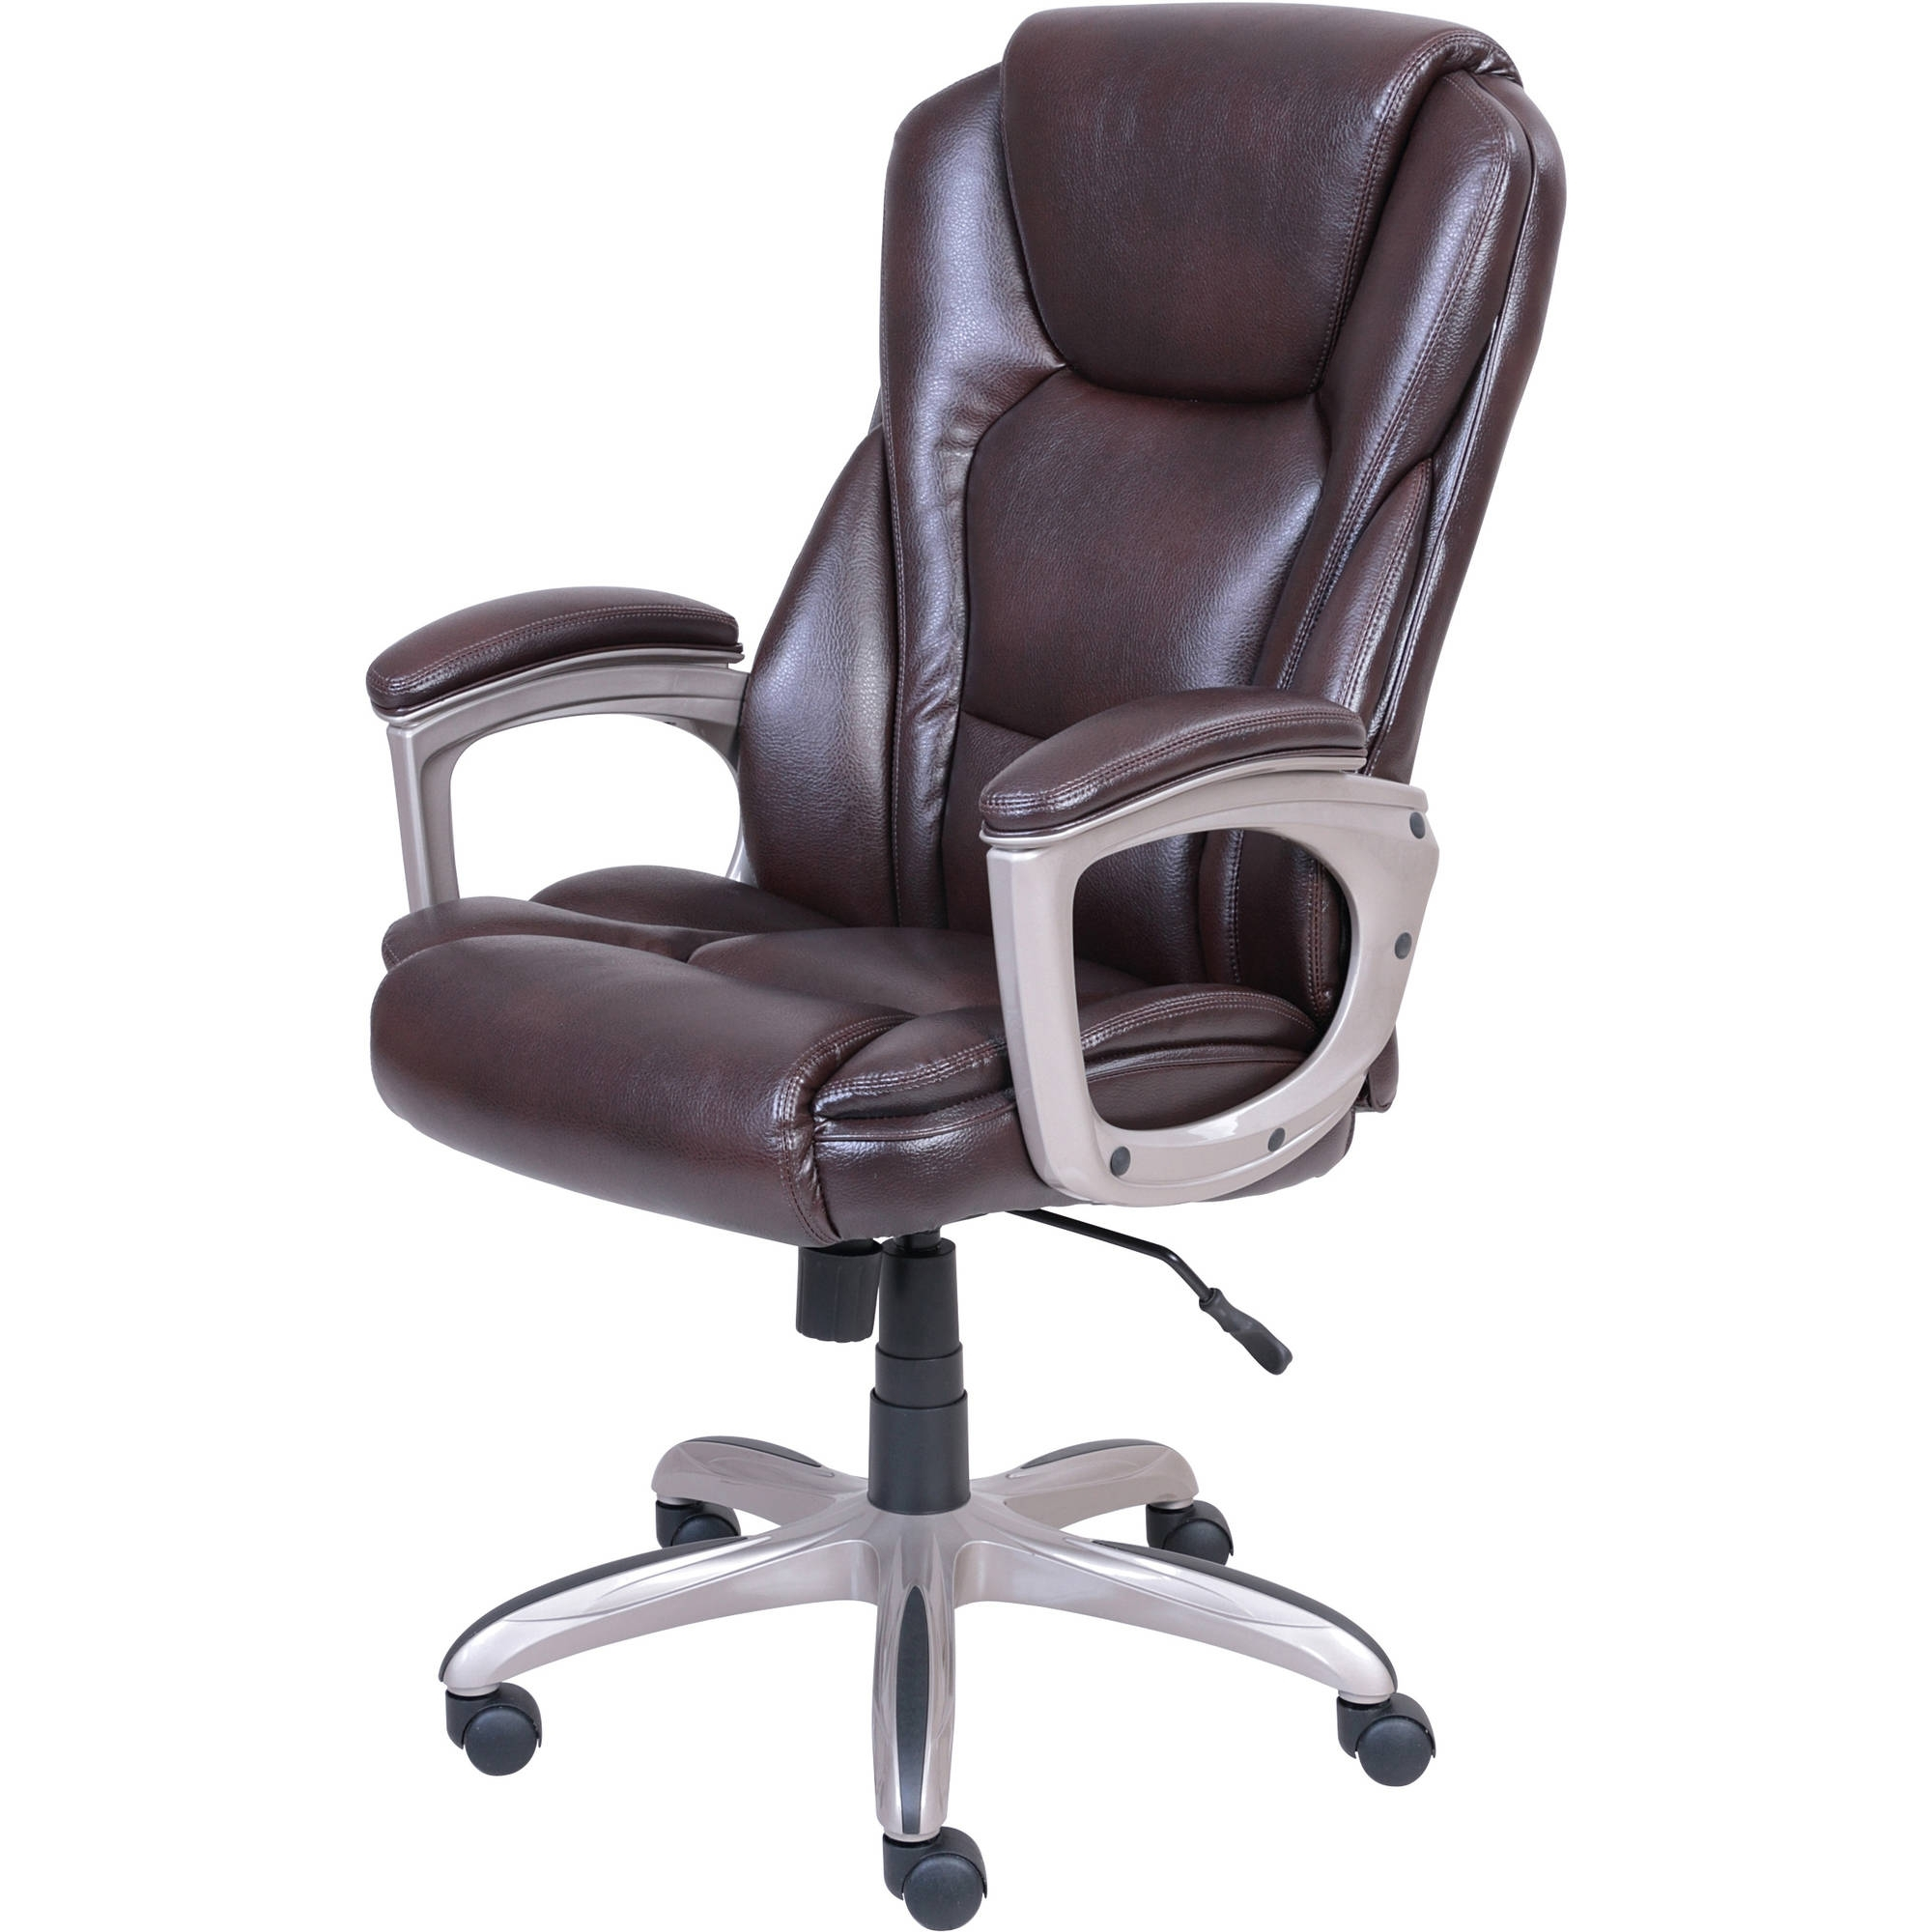 Popular Big And Tall Executive Leather Office Chairs • Office Chairs Within Big And Tall Executive Office Chairs (View 13 of 20)